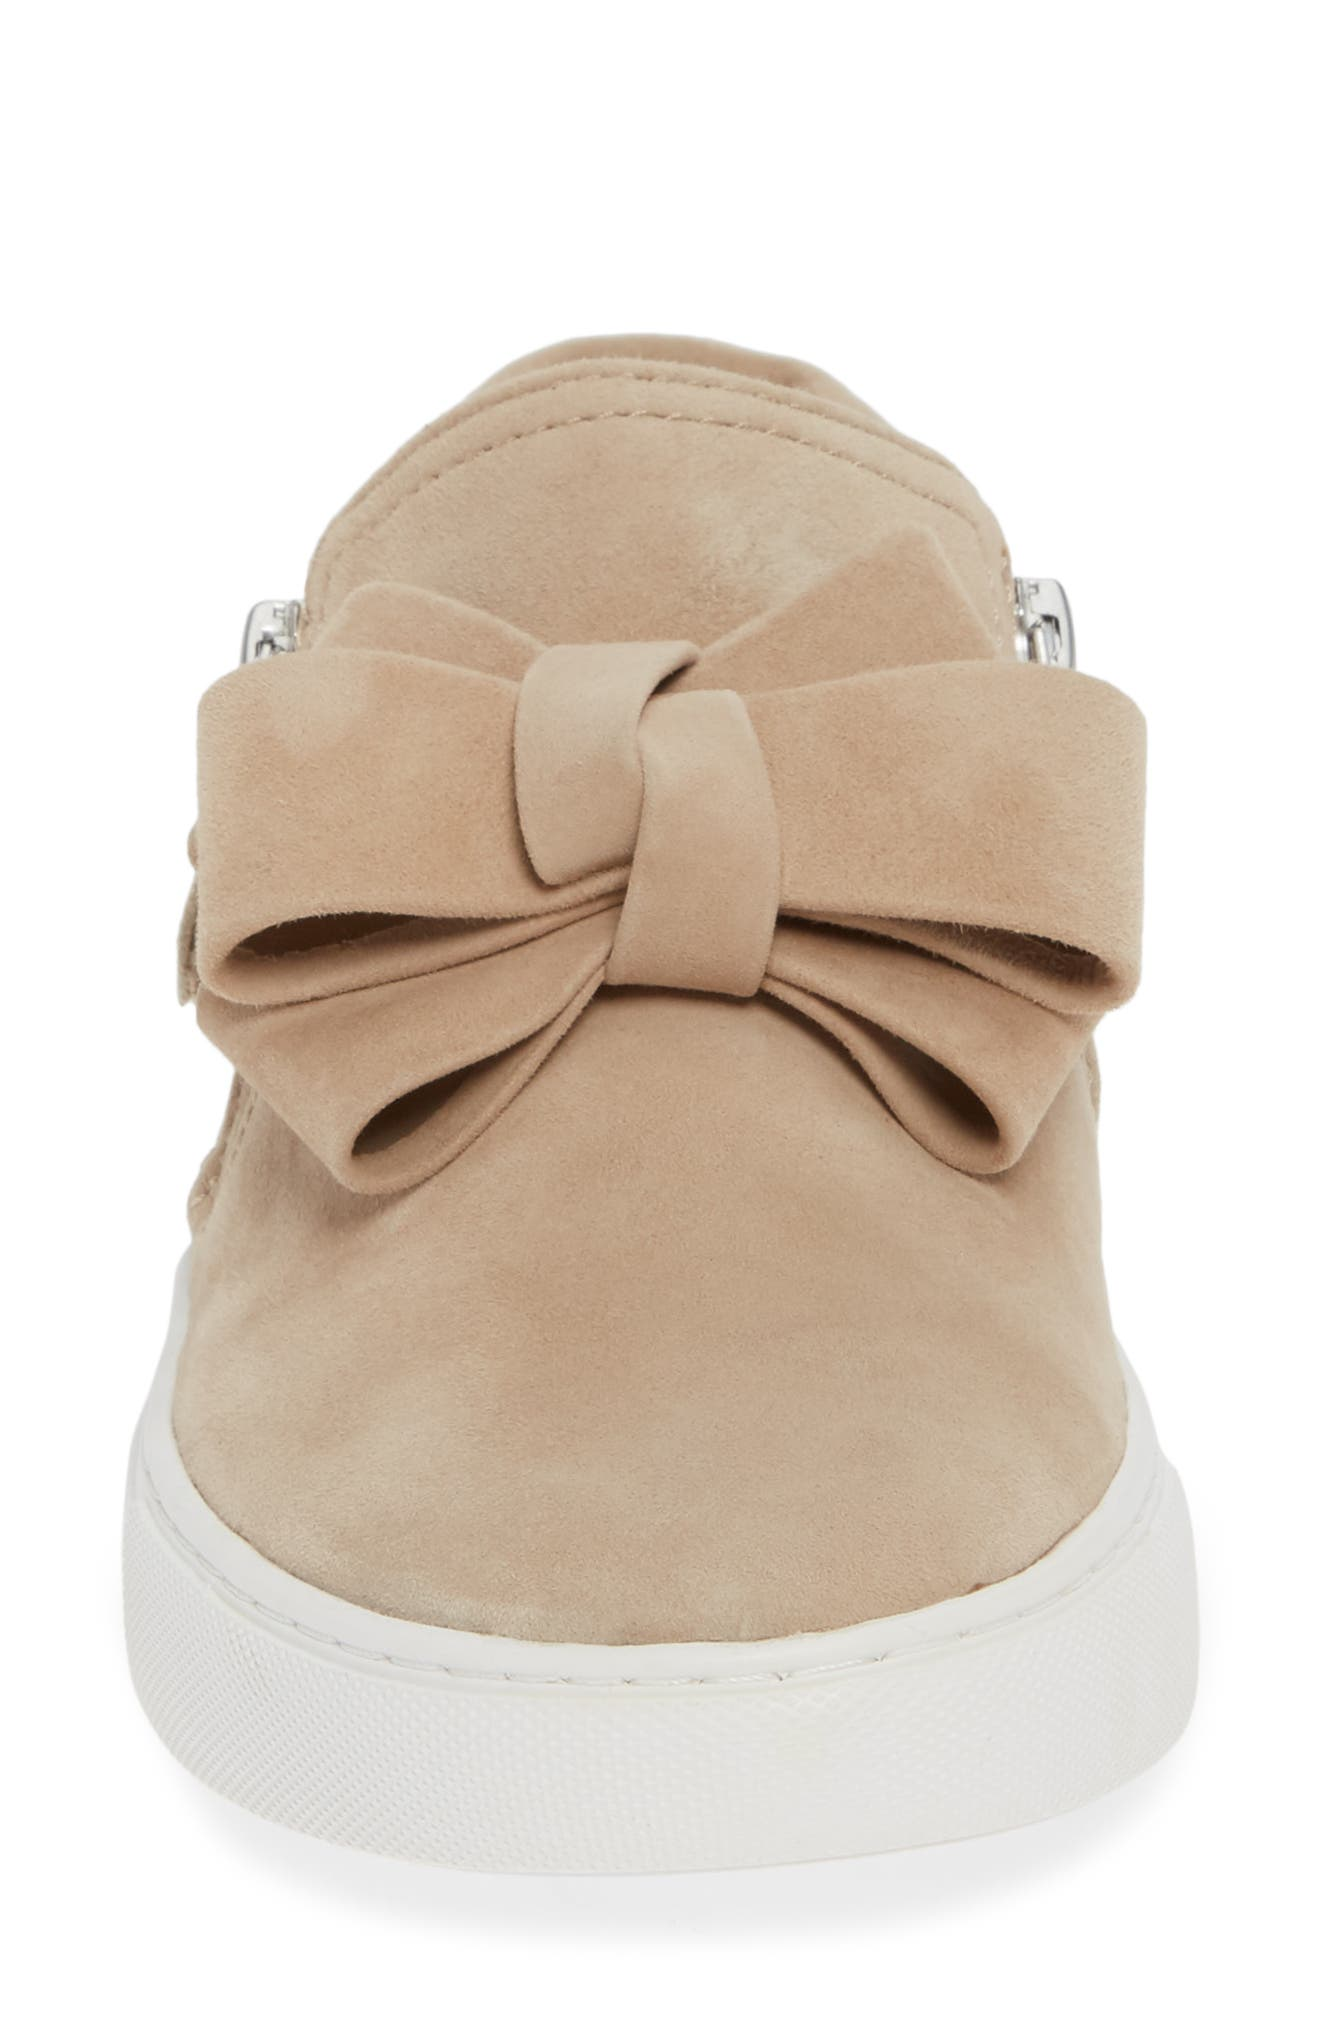 GENTLE SOULS BY KENNETH COLE, Lowe Bow Sneaker, Alternate thumbnail 4, color, CAFE SUEDE